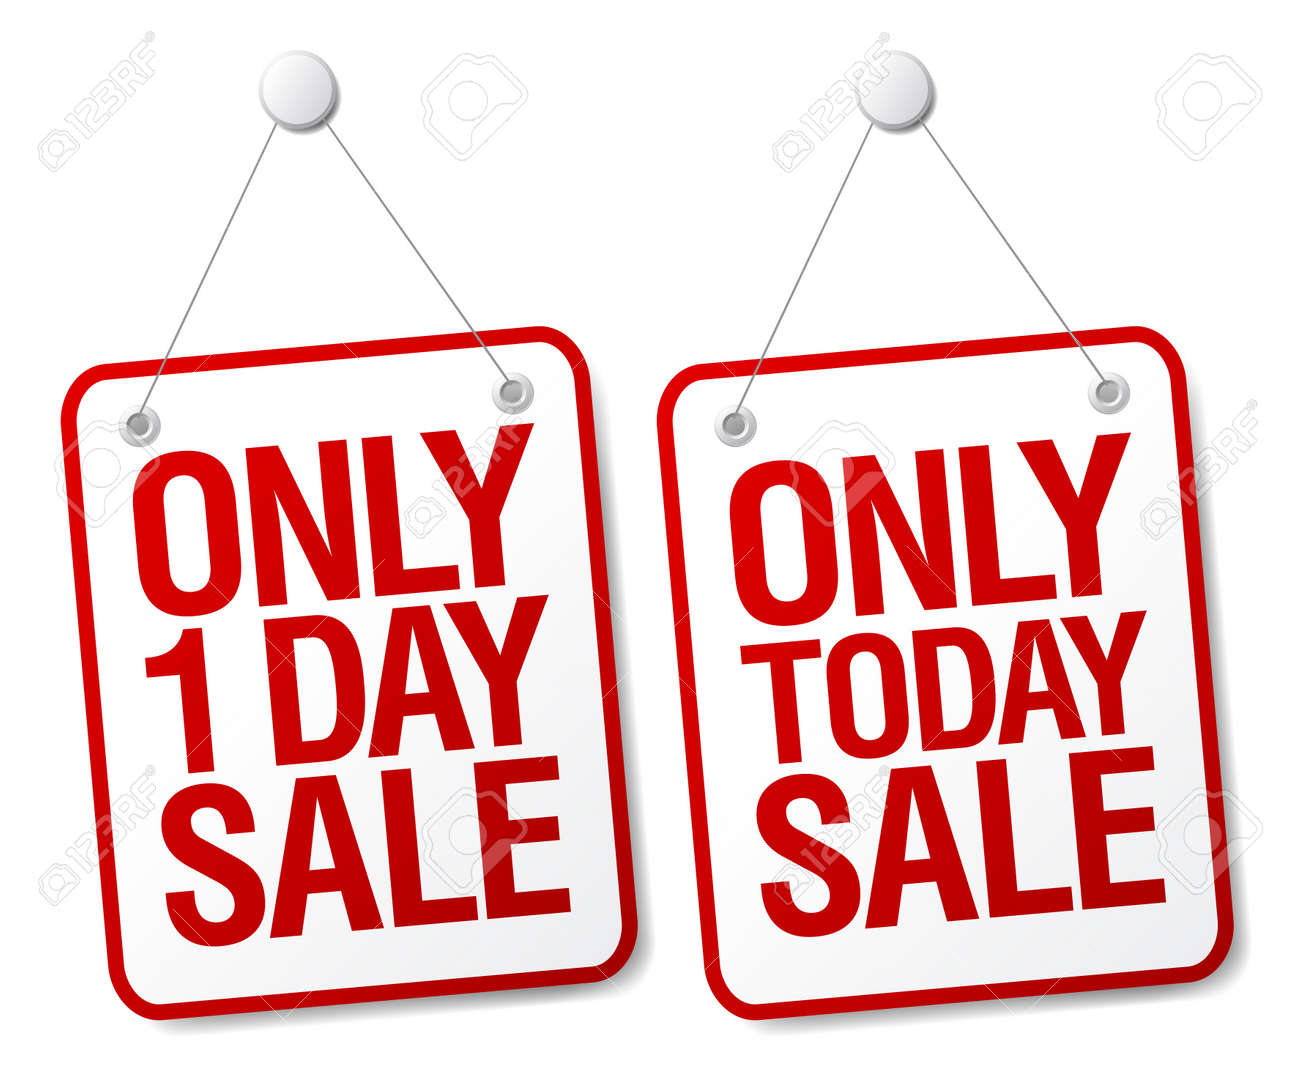 Only today sale signs set. Stock Vector - 9715478